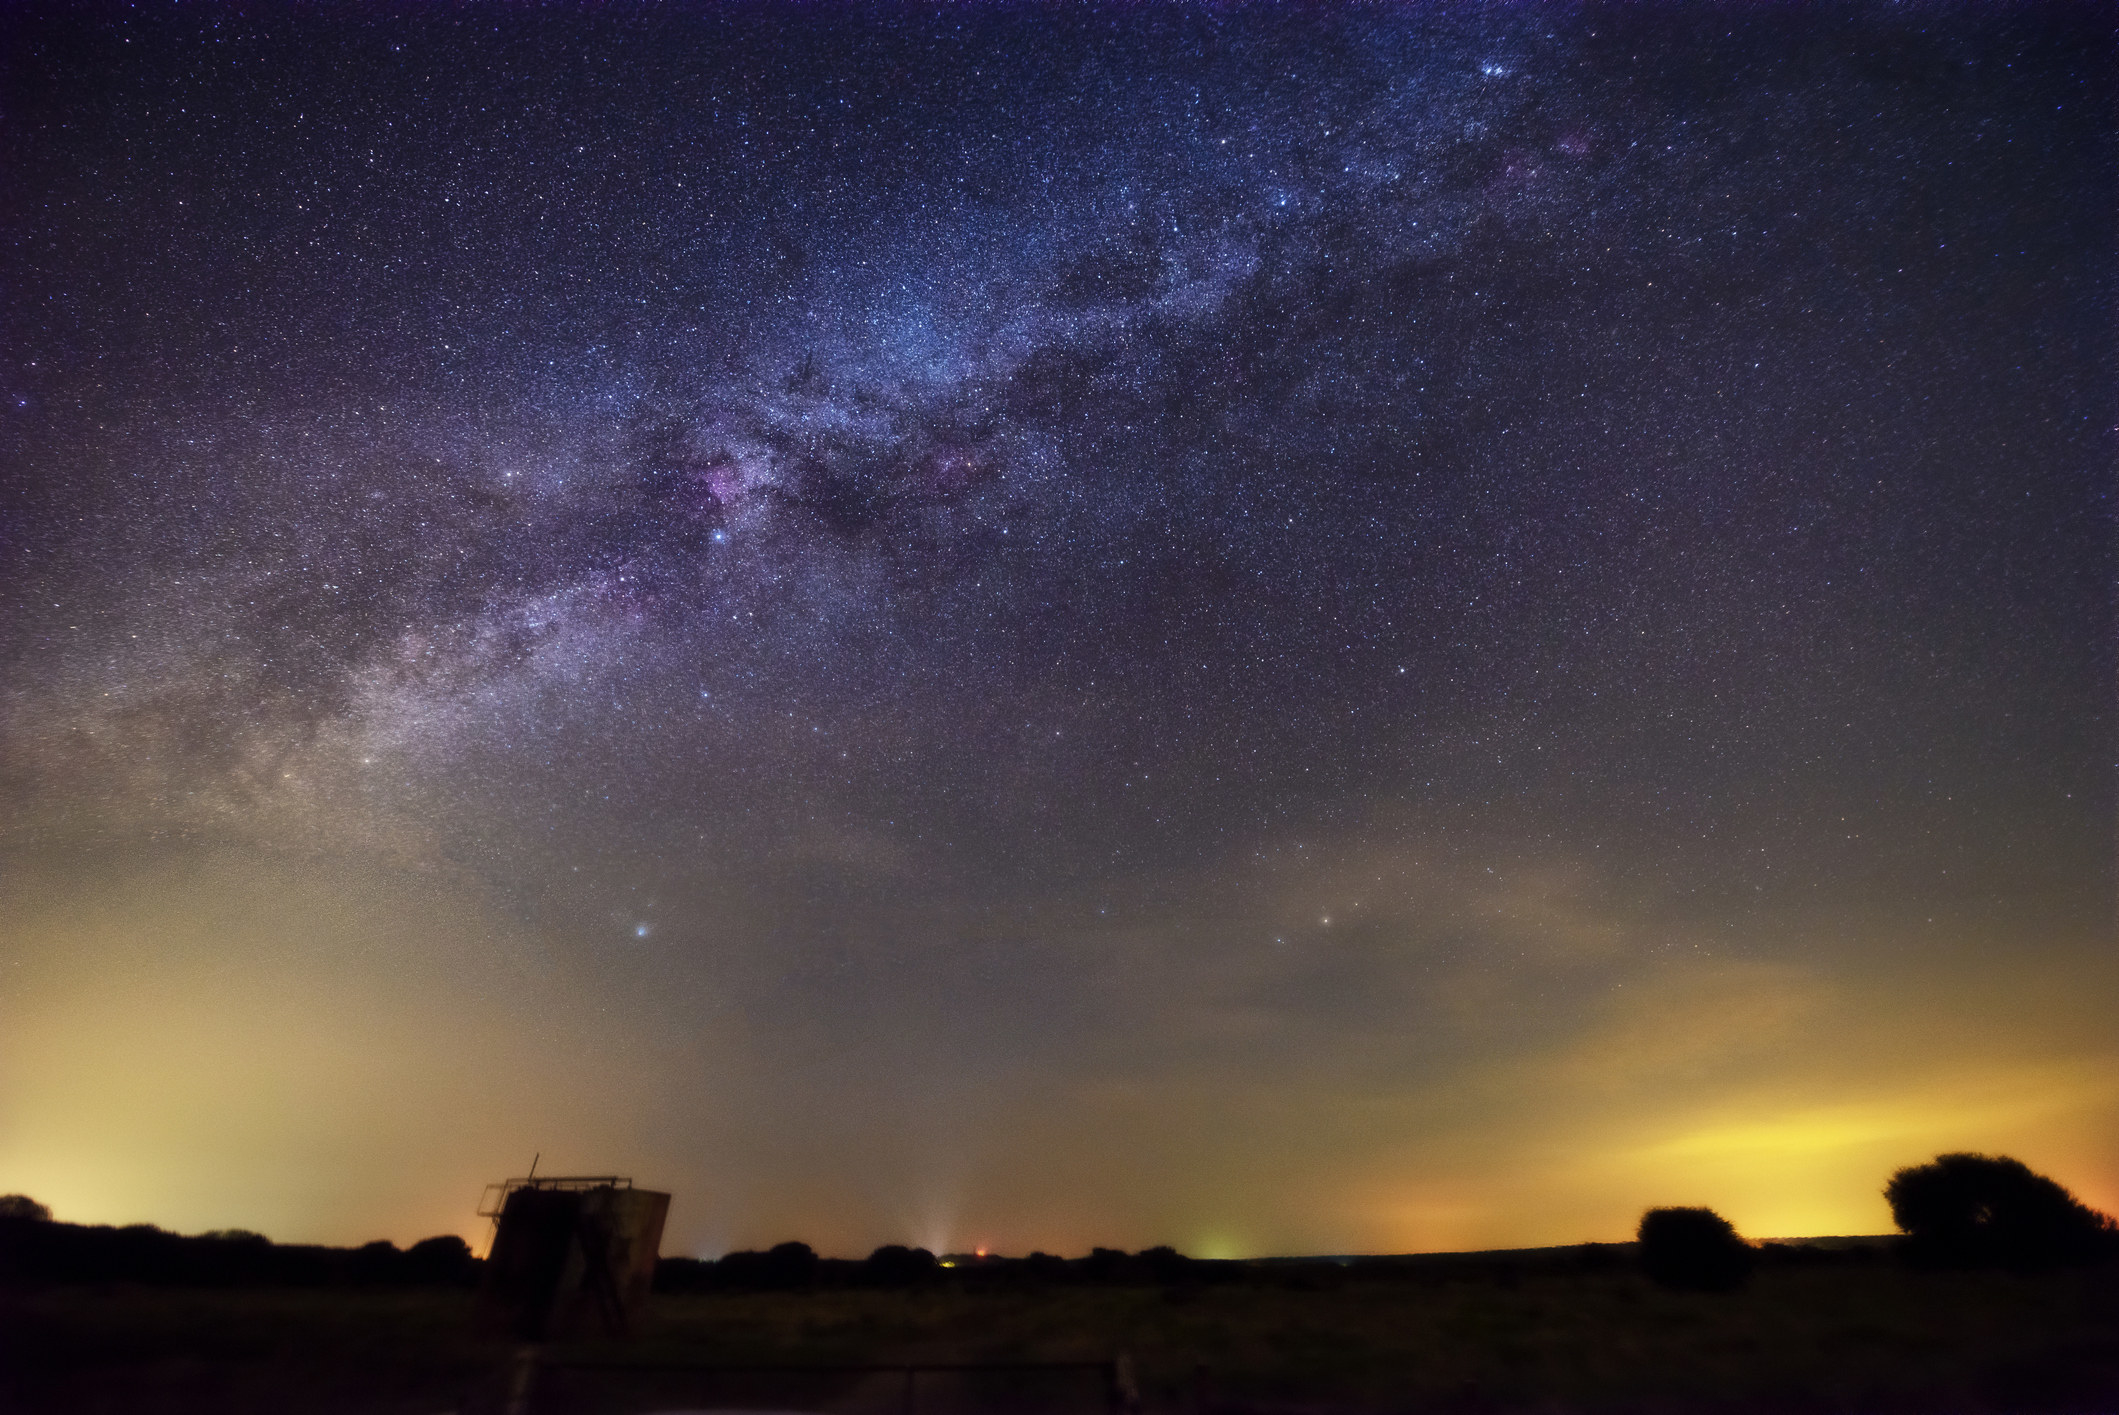 Beautiful night sky with vivid milky way and warm light over the horizon